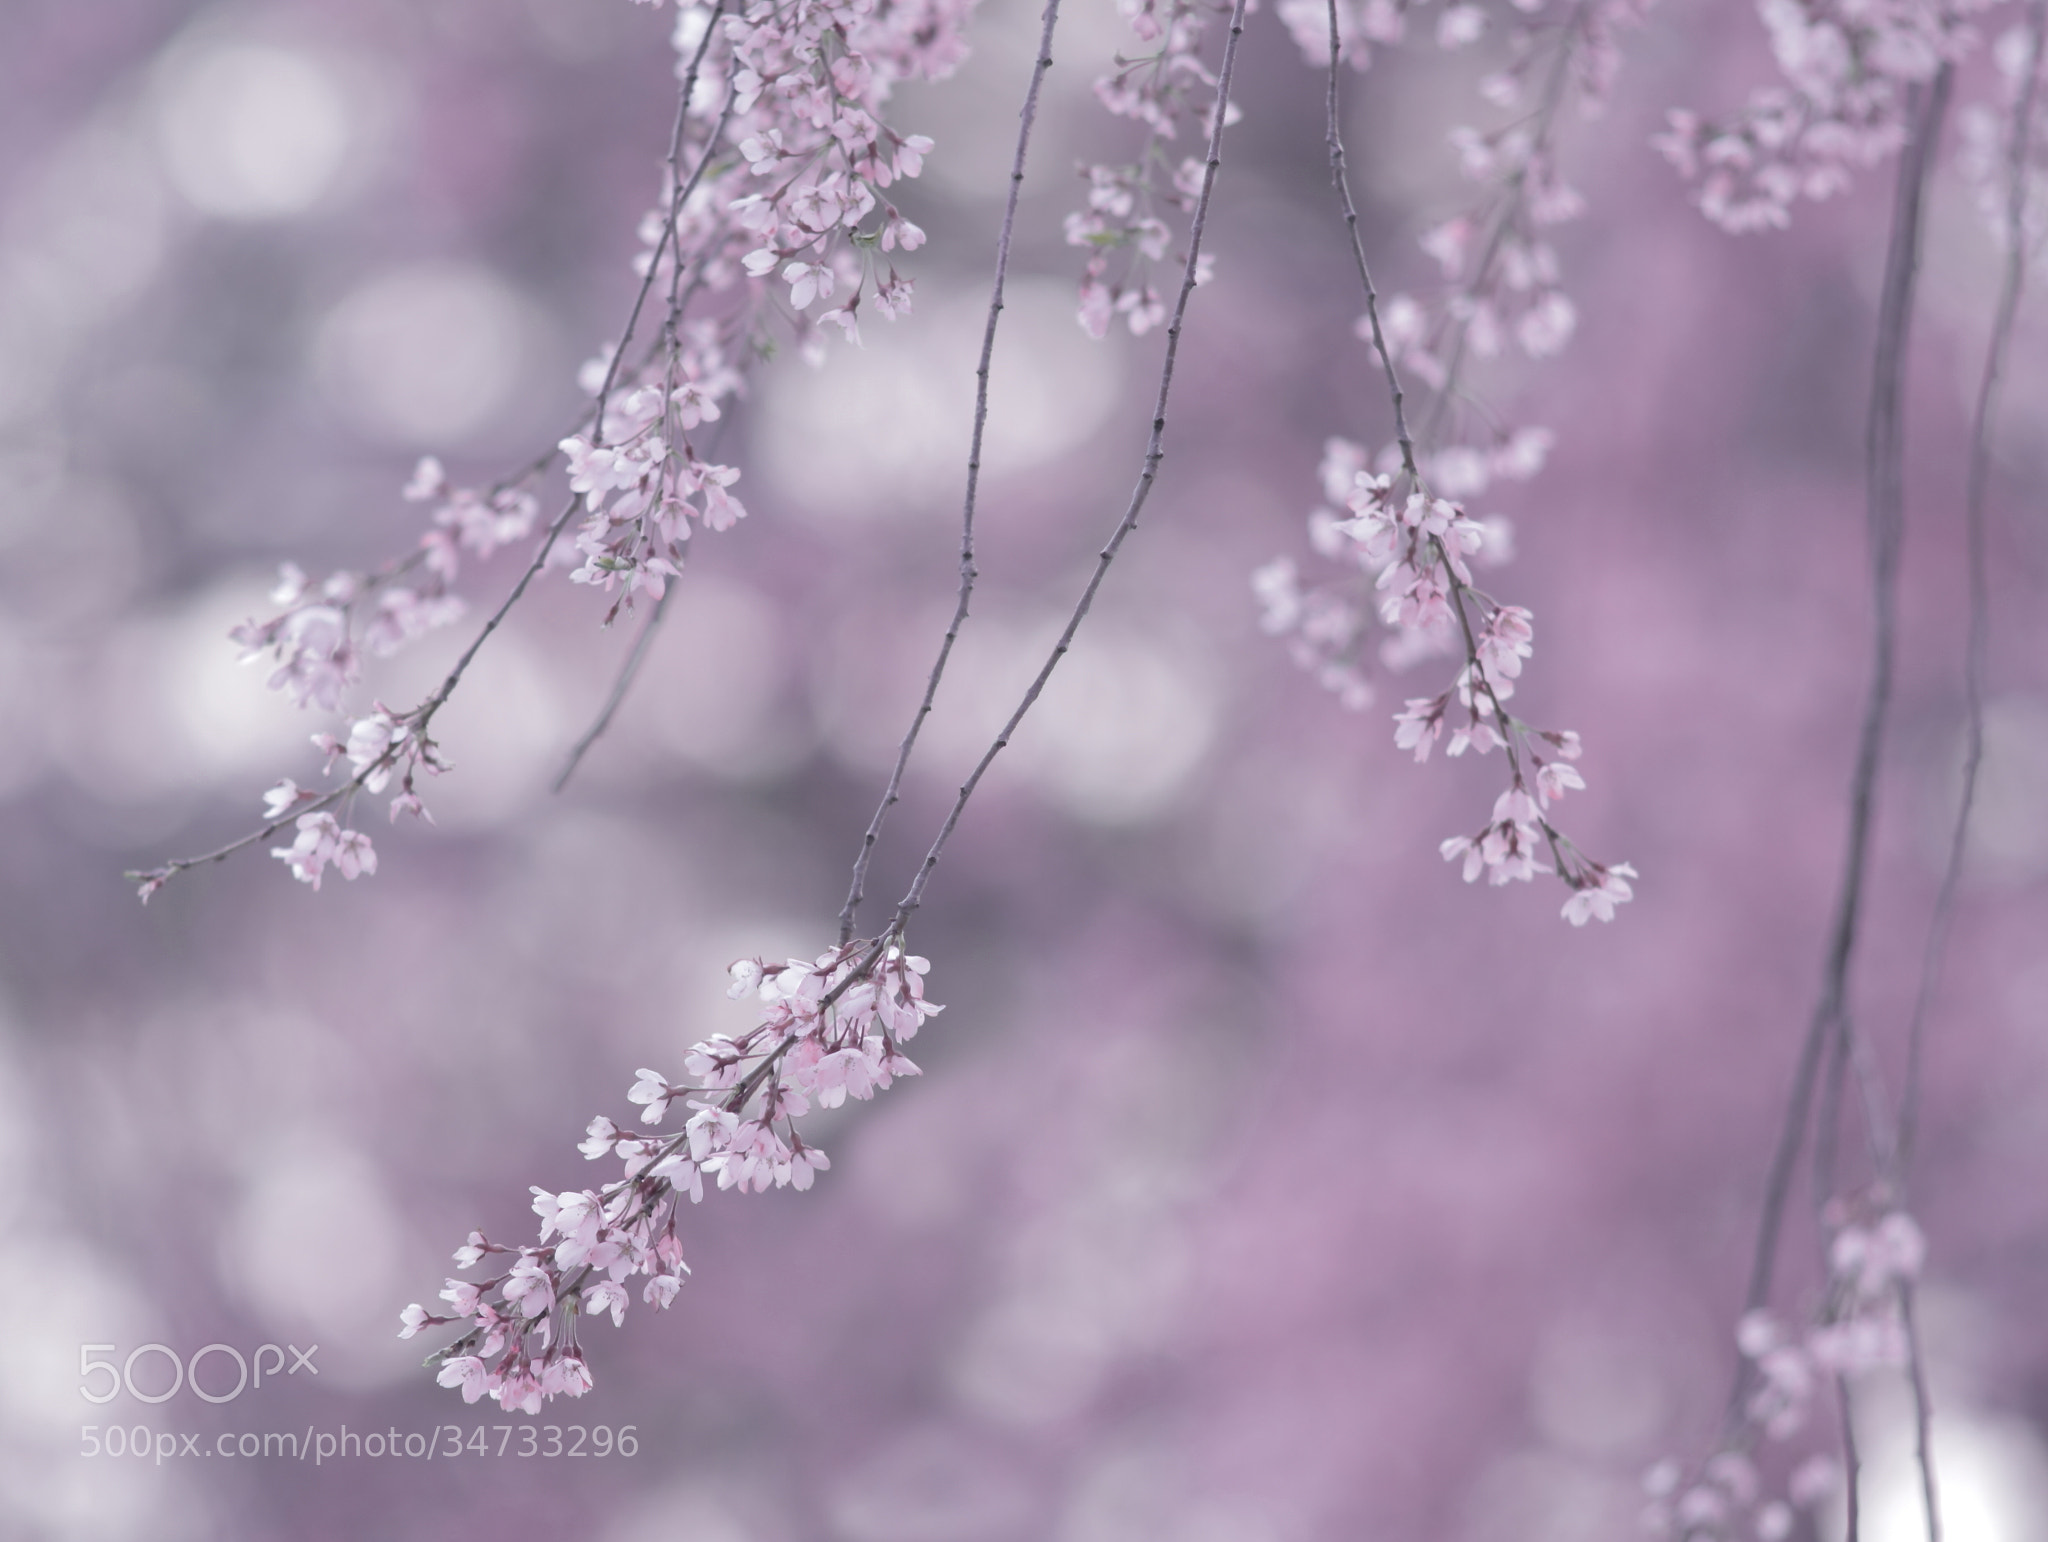 Photograph Lyric poetry of spring  by Shihya Kowatari on 500px